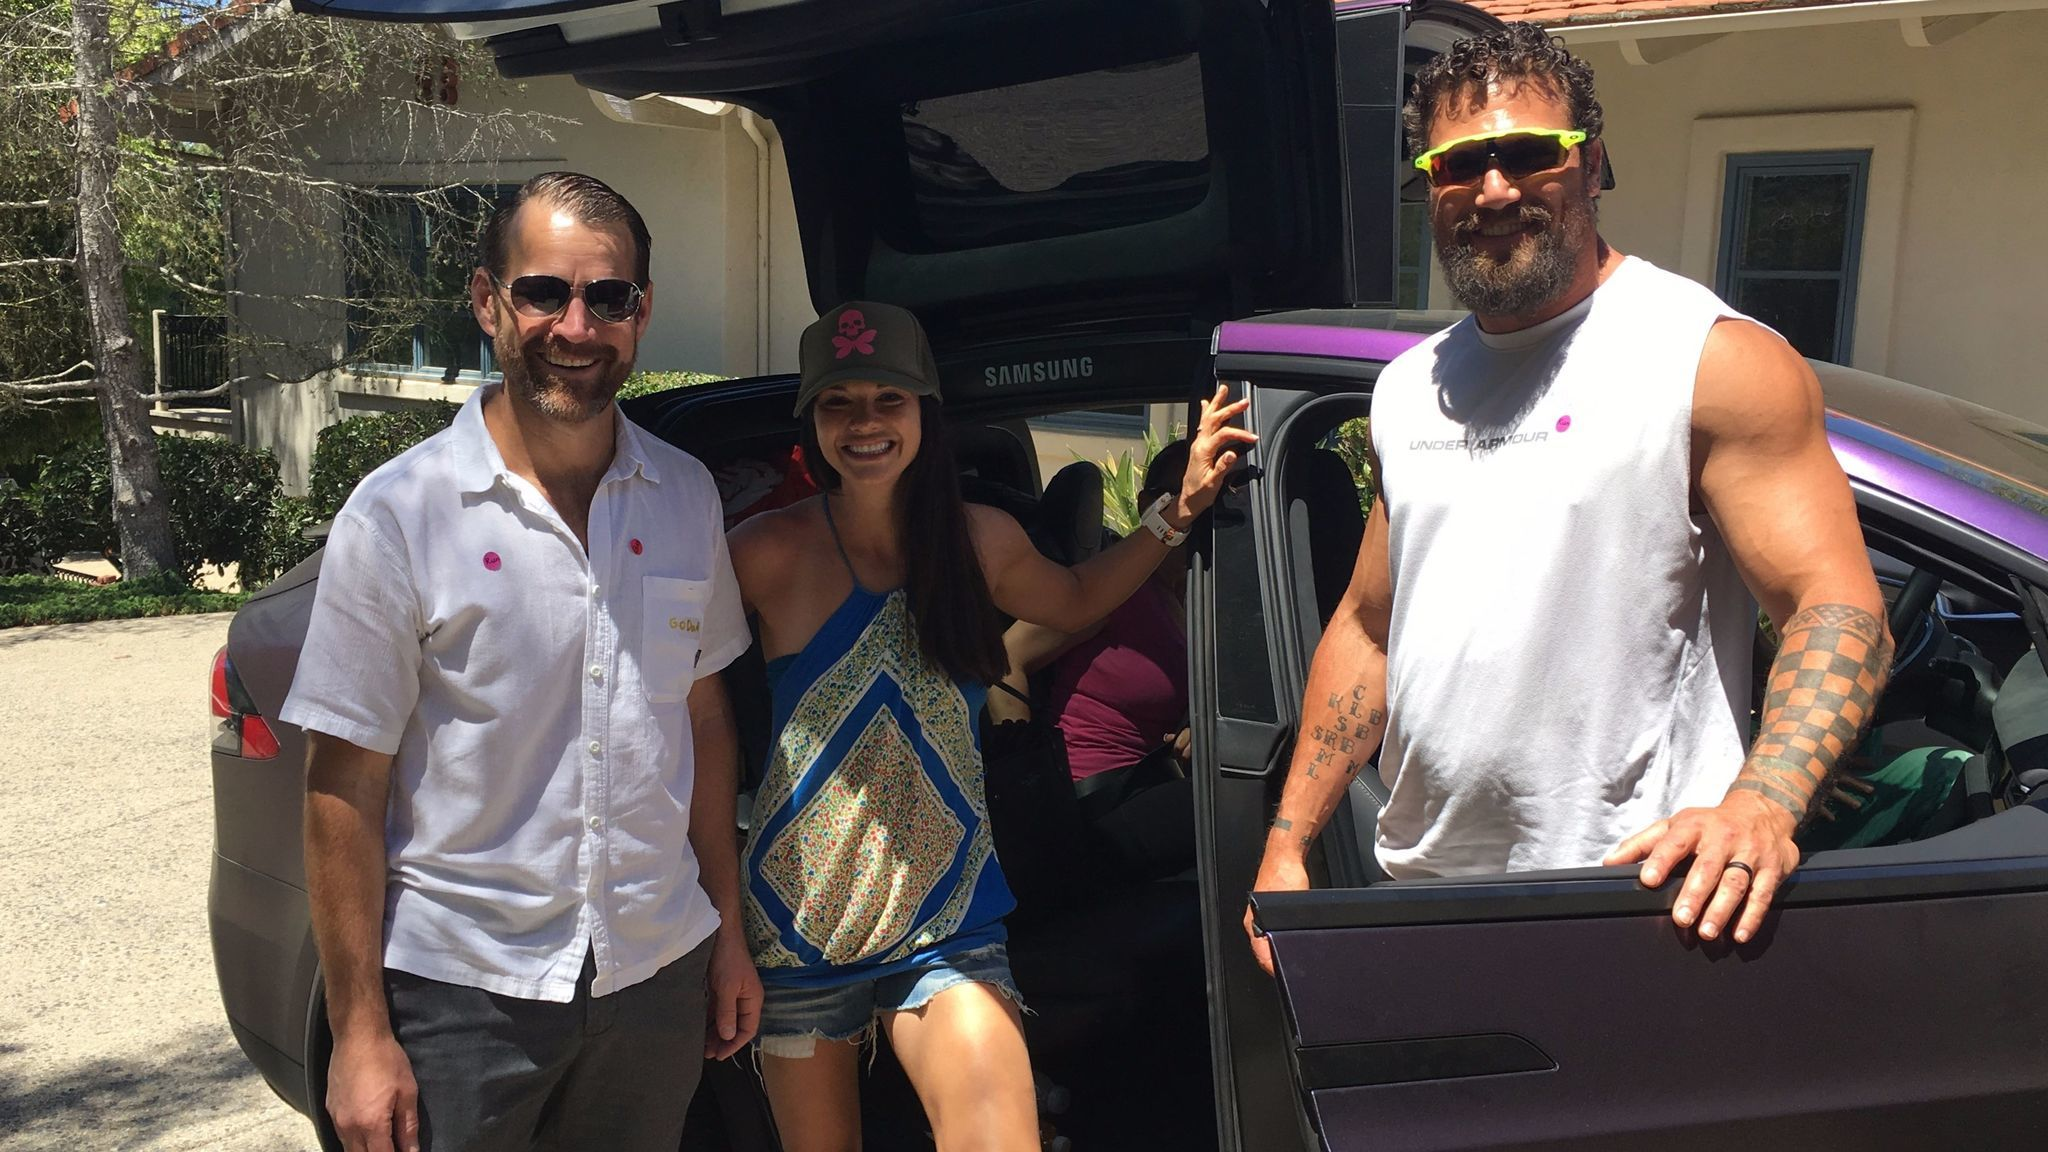 The three-person Badwater team prepares to leave Rancho Santa Fe.